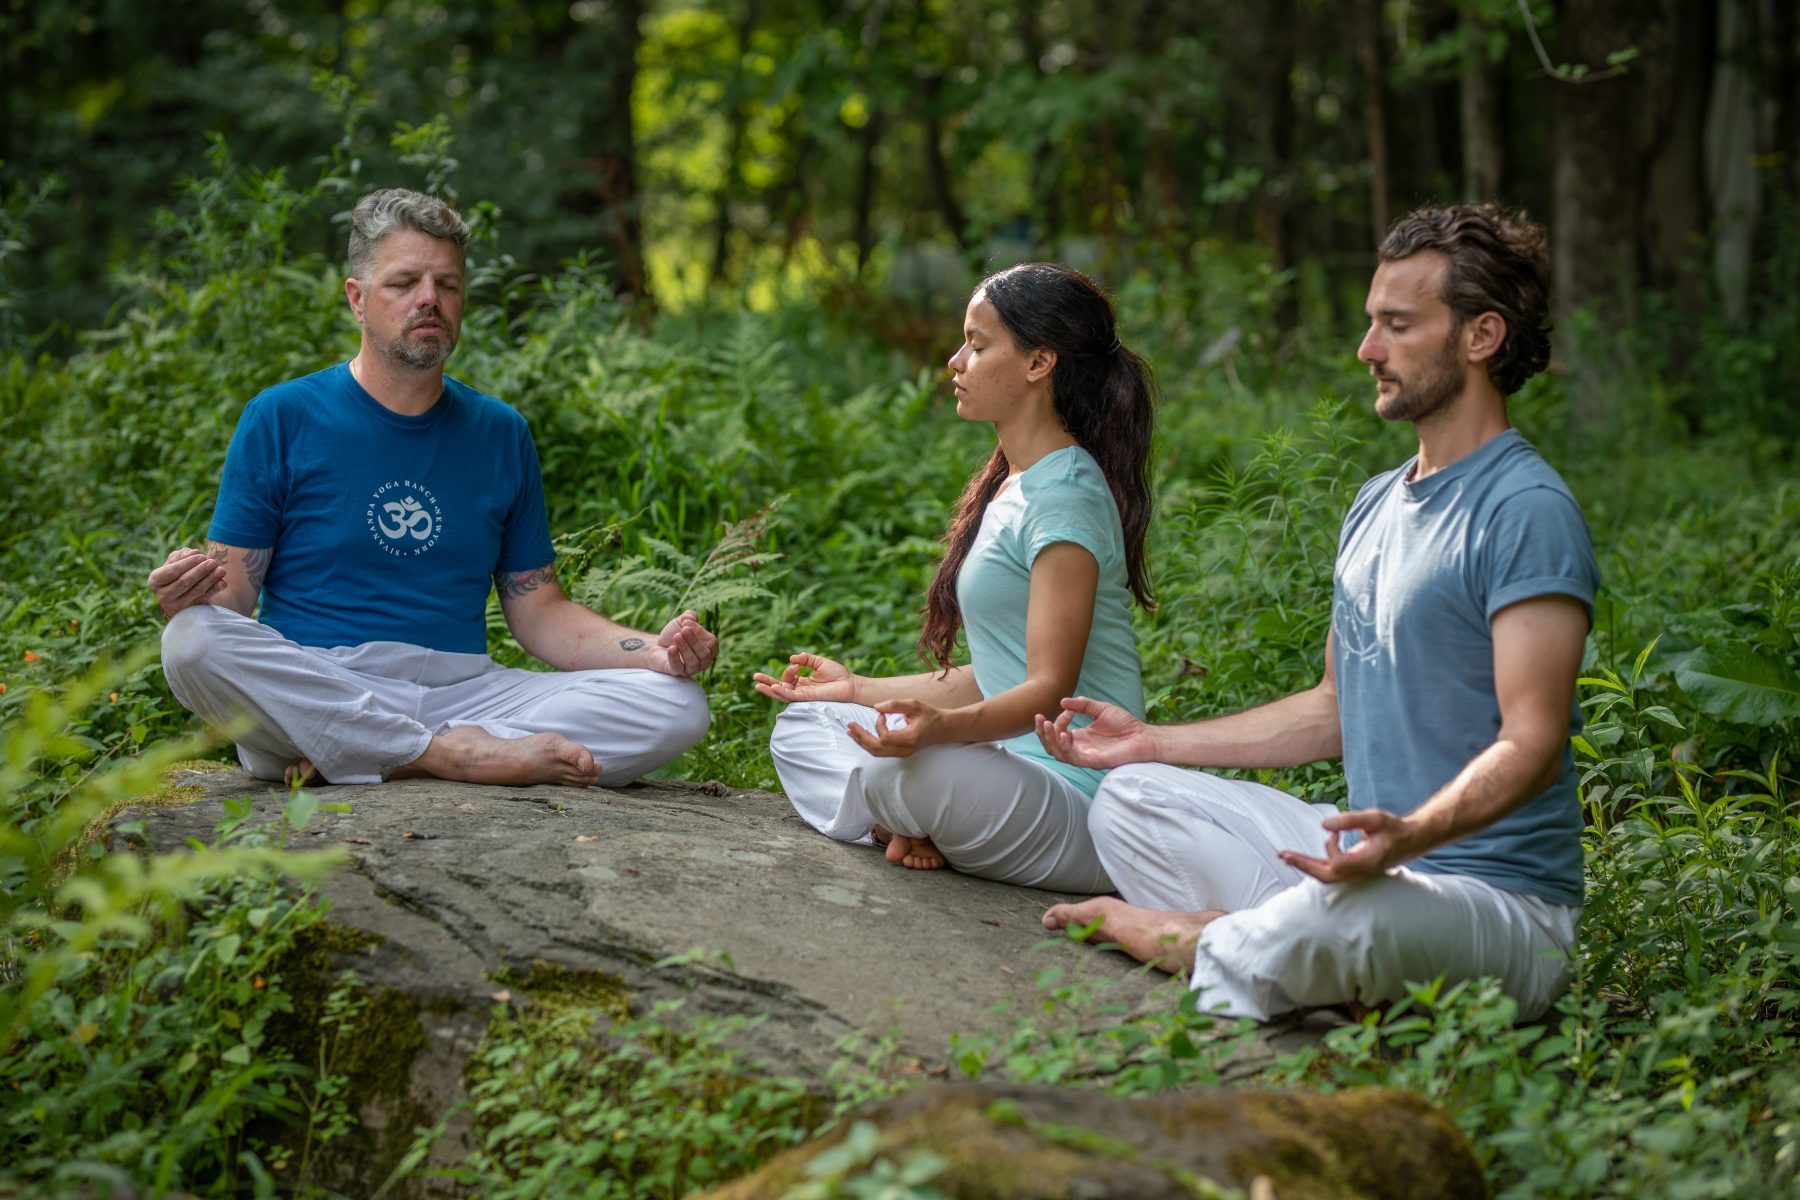 Essentials of Meditation Retreat at the Sivananda Yoga Ranch